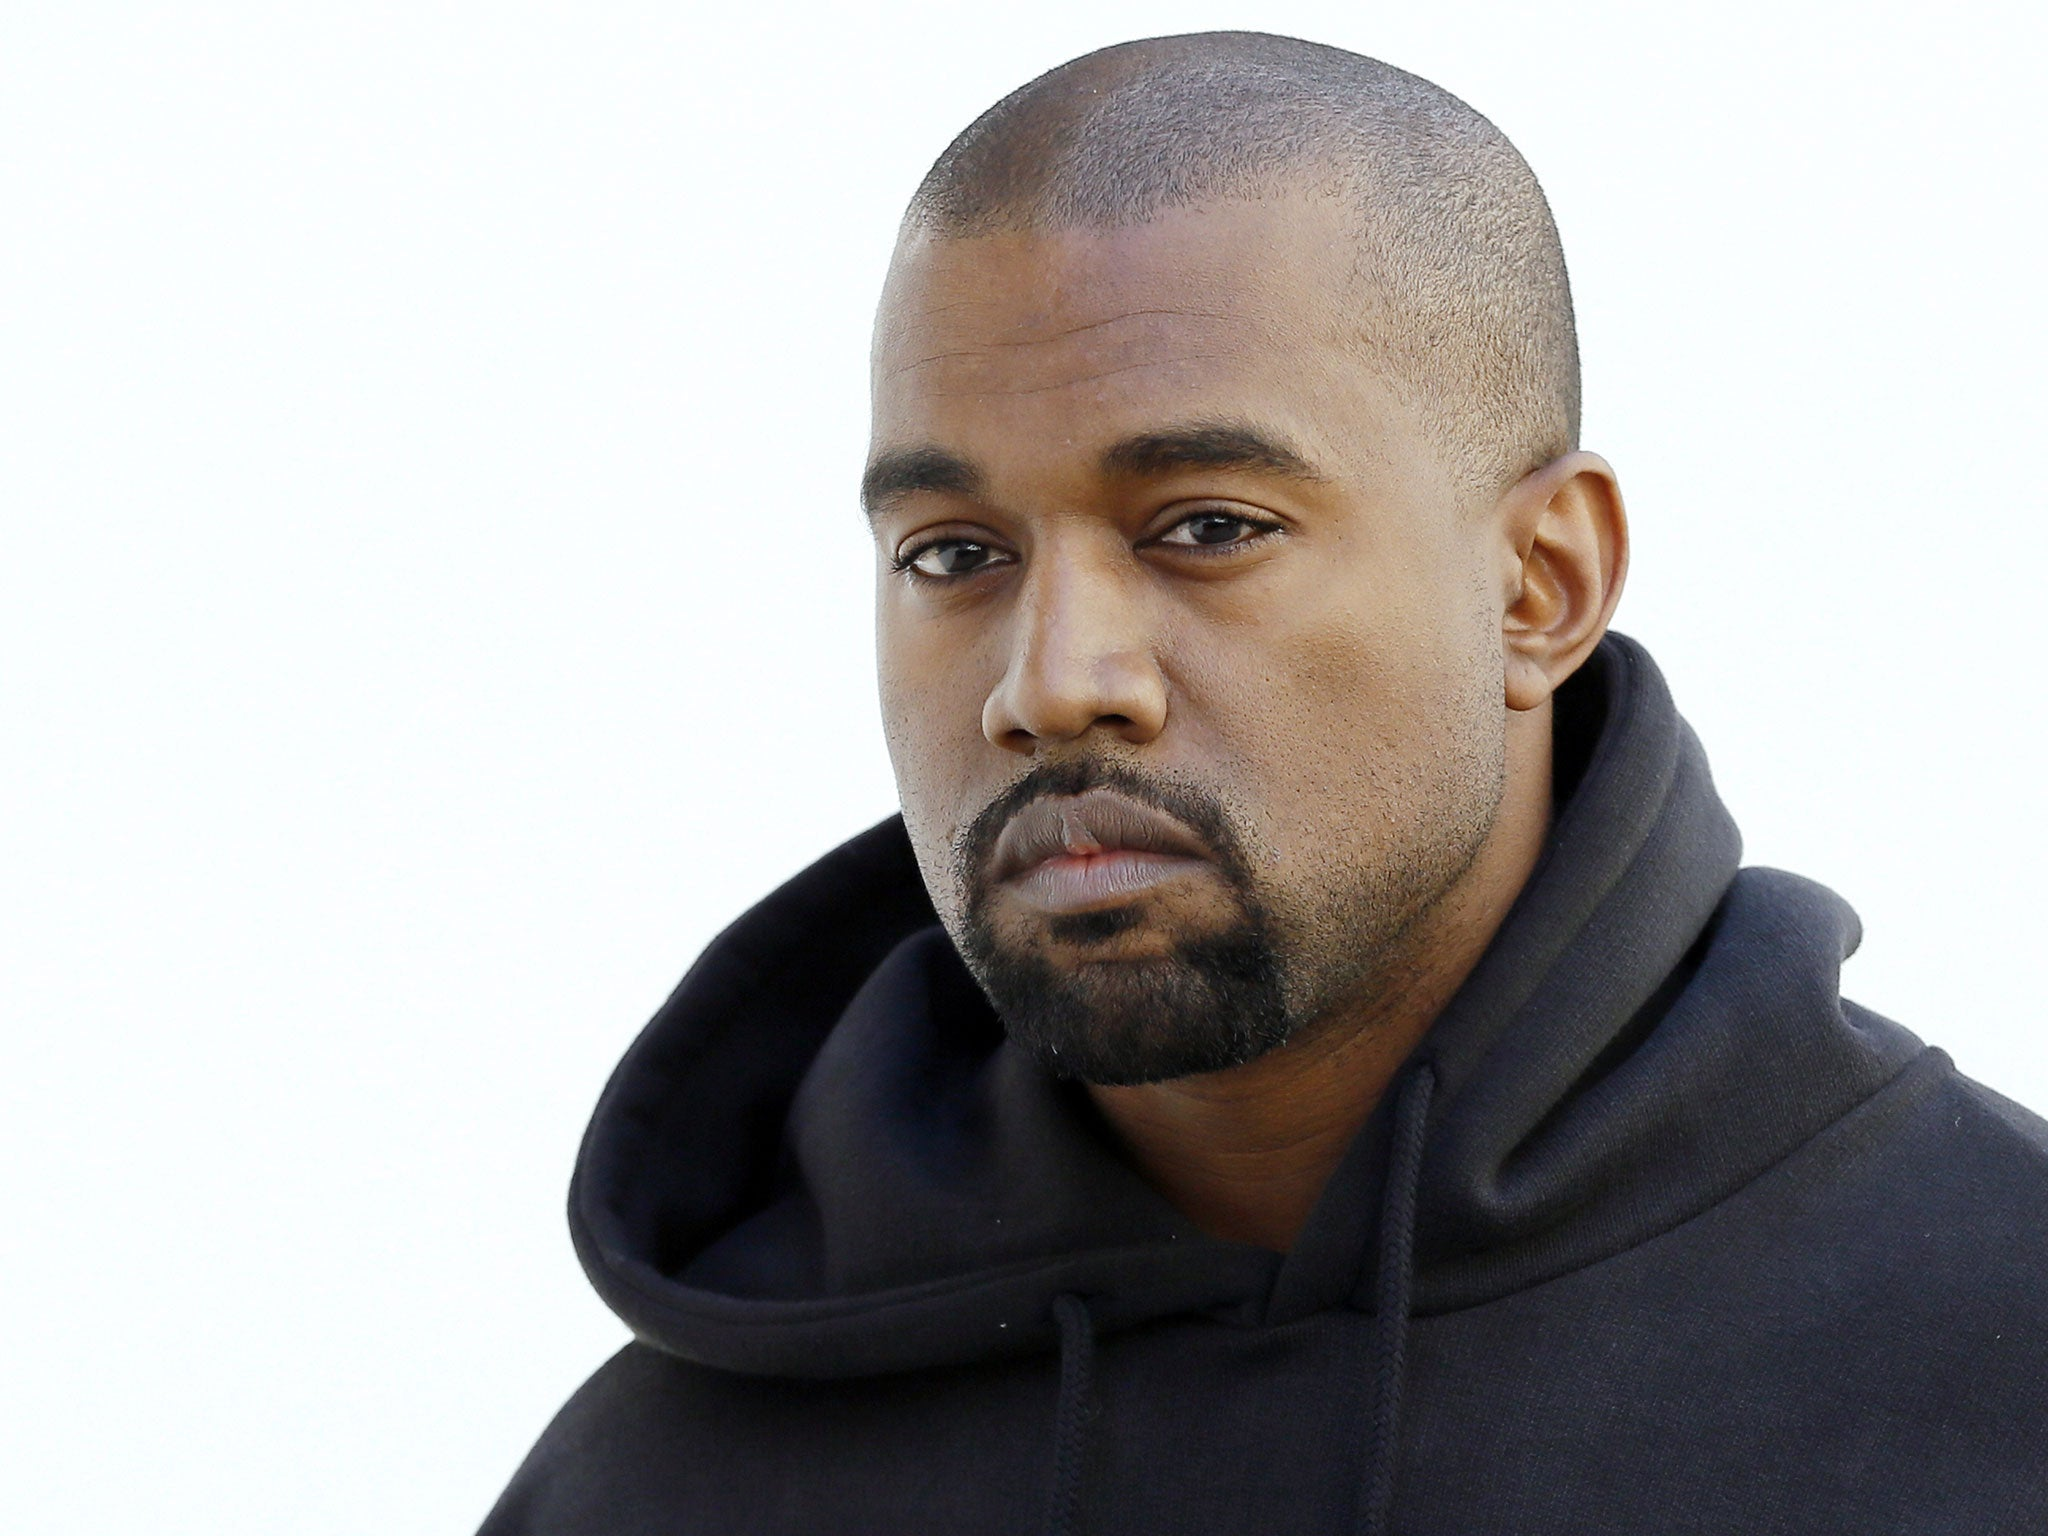 Kanye West credits a trip to the dentist for his ego-driven